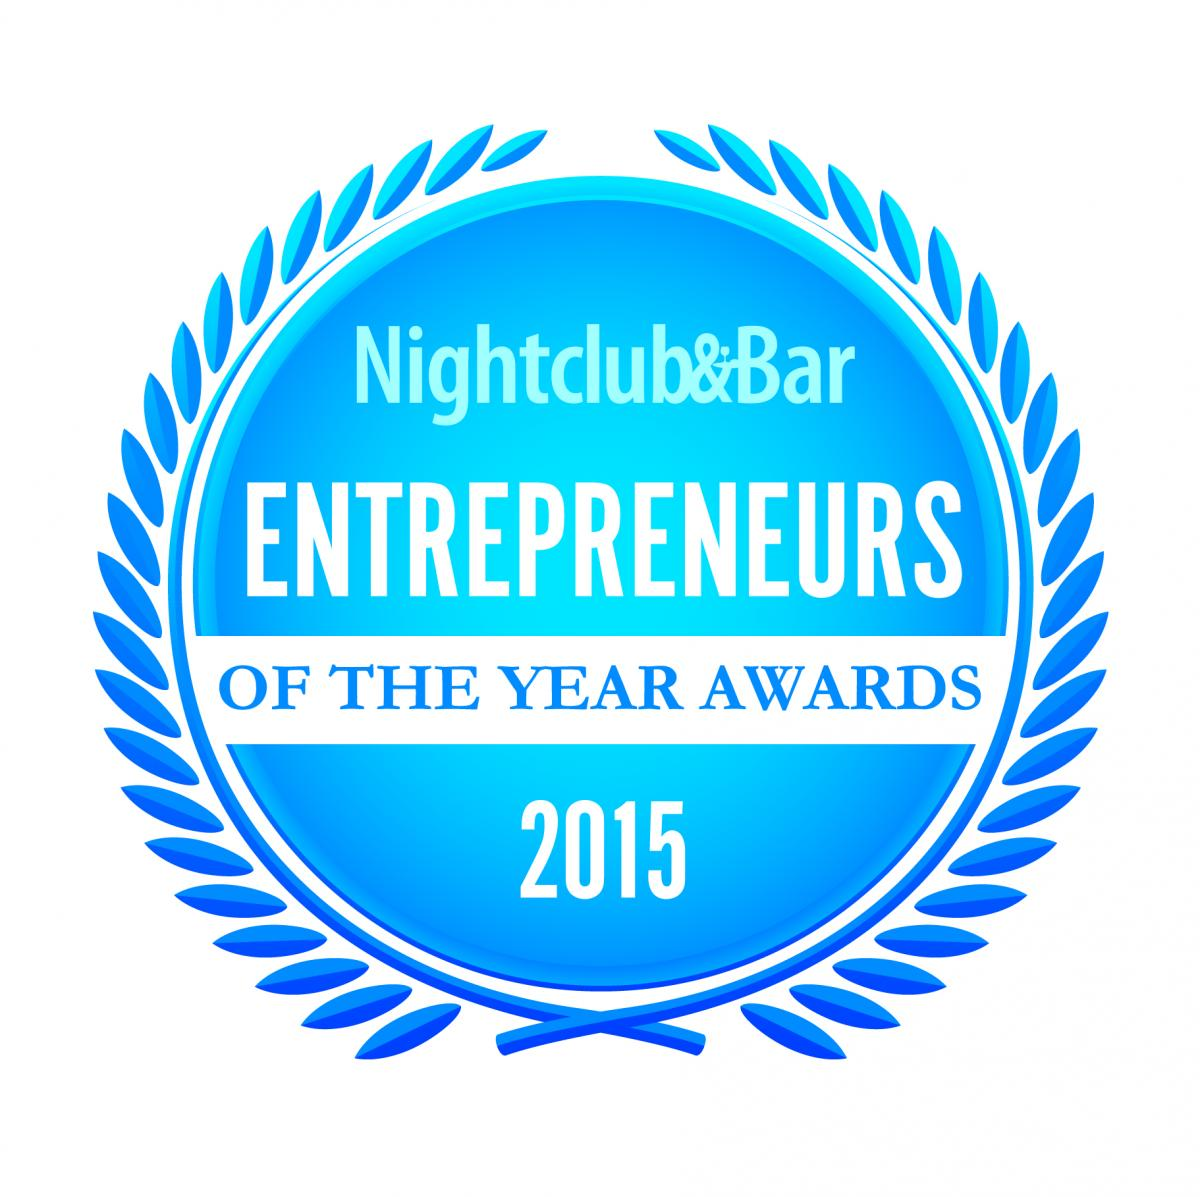 2015 Entrepreneurs Awards Program Winners Announced